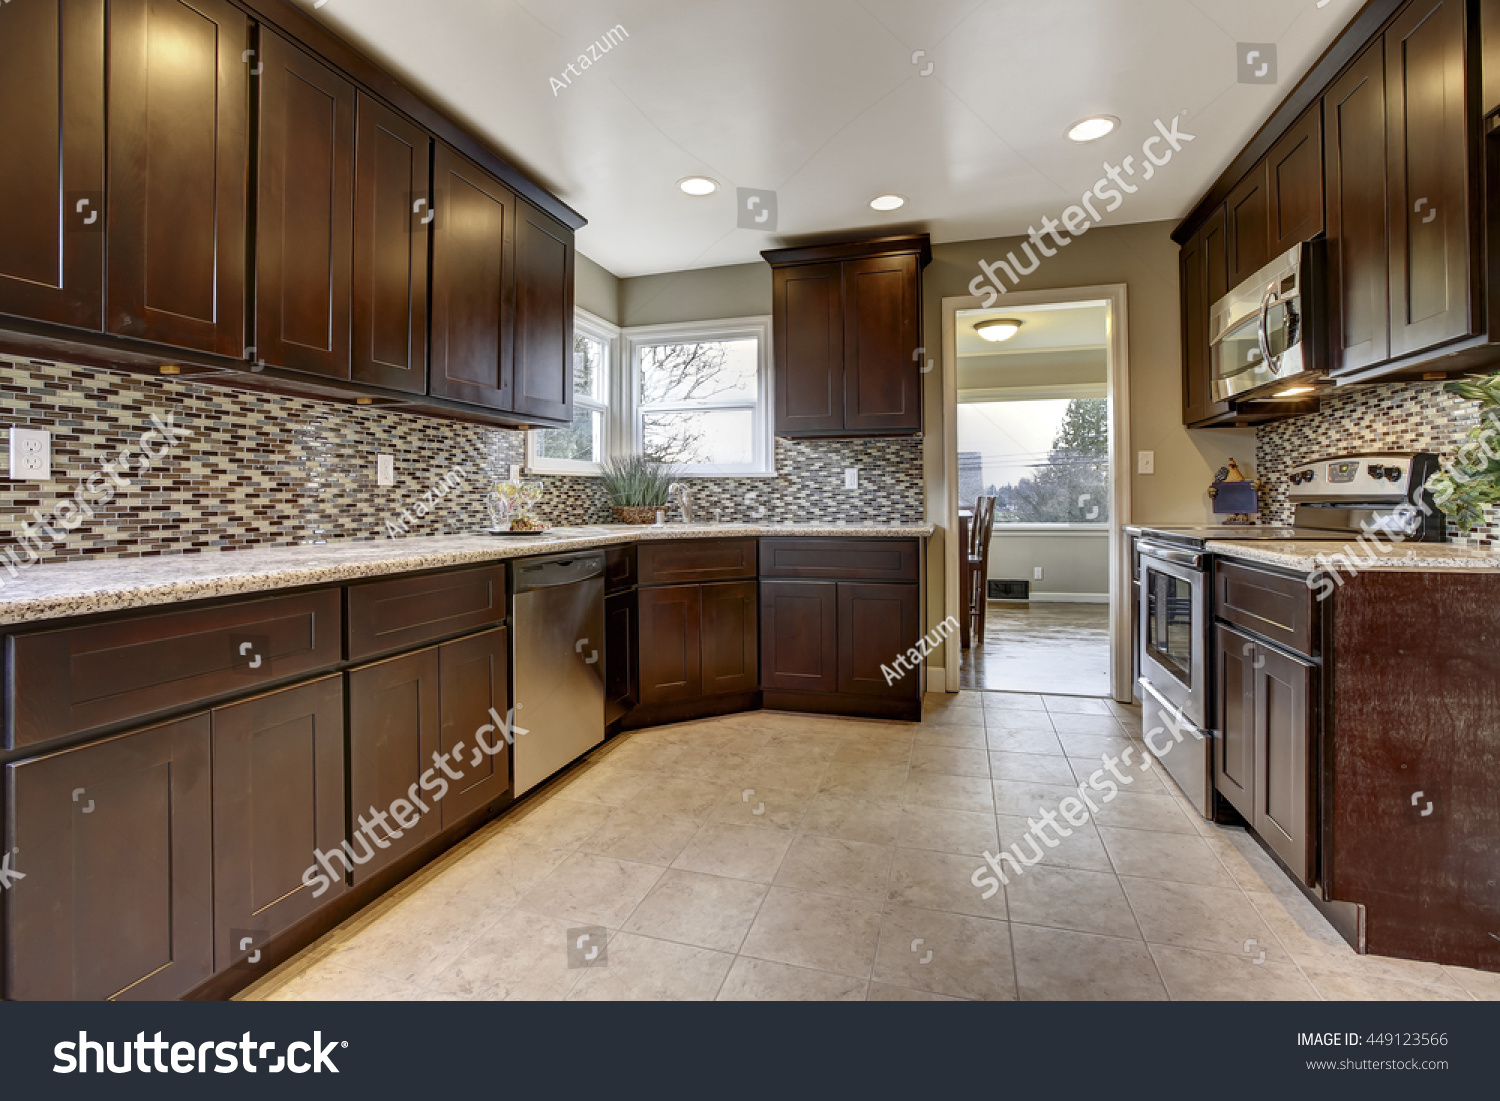 Modern kitchen interior dark brown storage stock photo royalty free modern kitchen interior with dark brown storage cabinets with granite counter tops and new tile floor dailygadgetfo Image collections